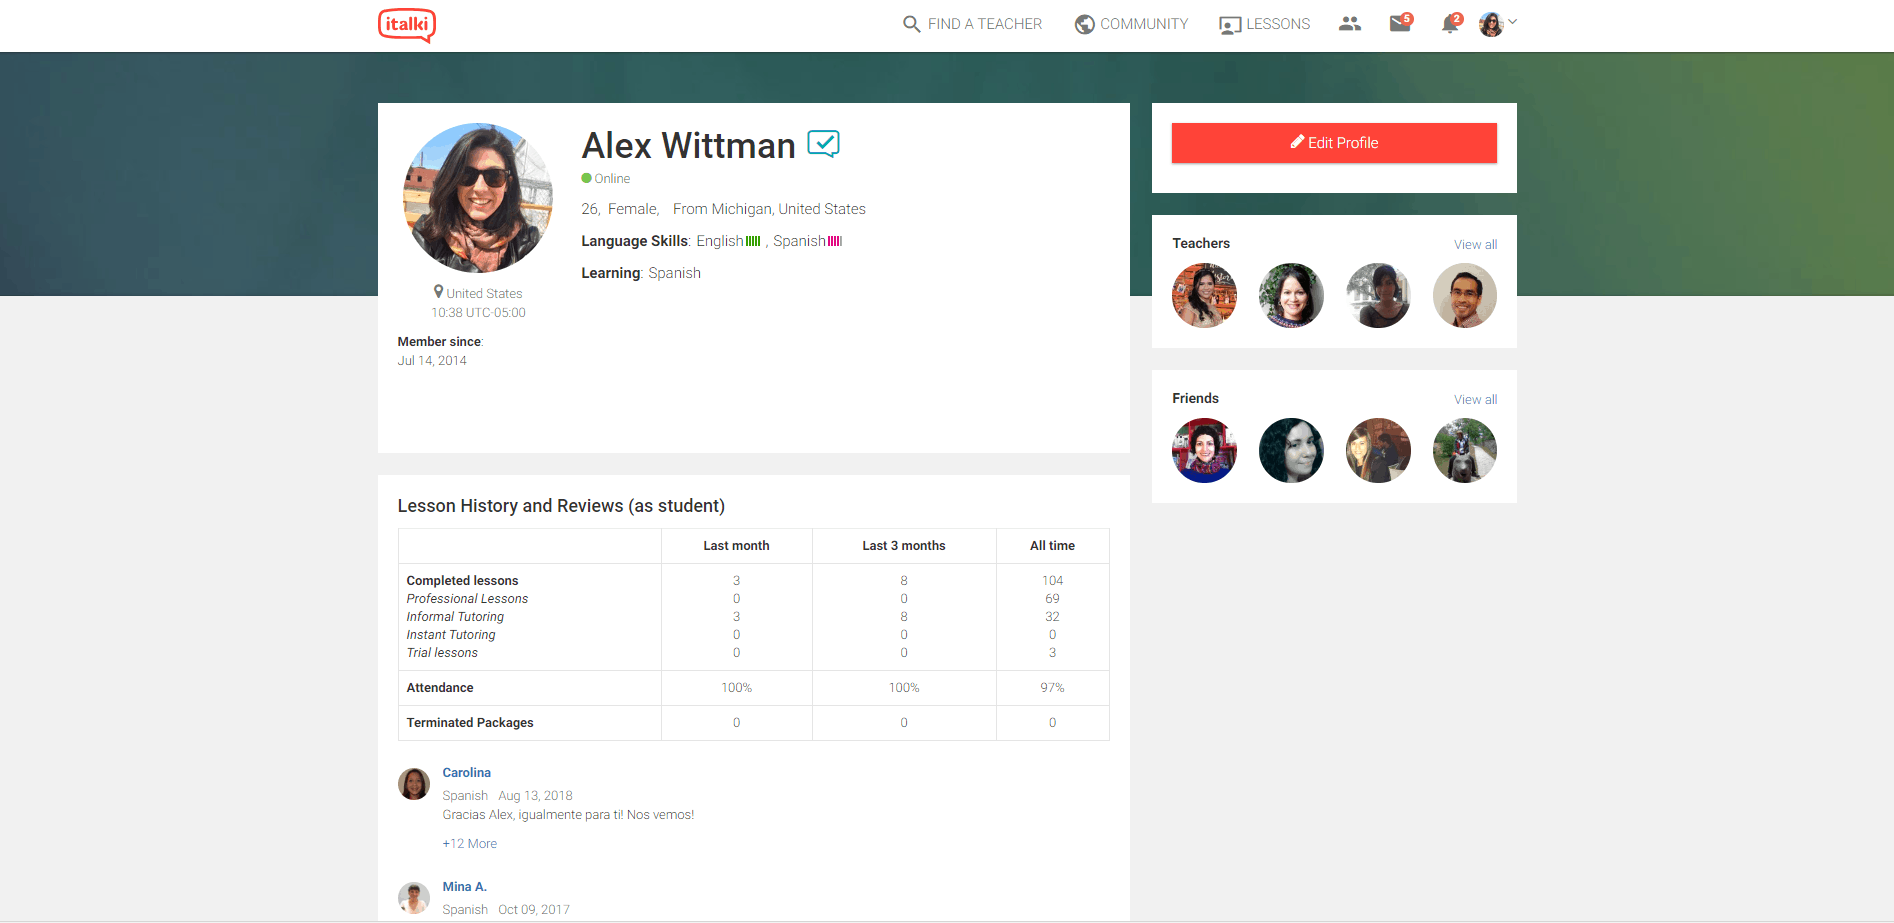 Set up an italki profile and learn a language online today!